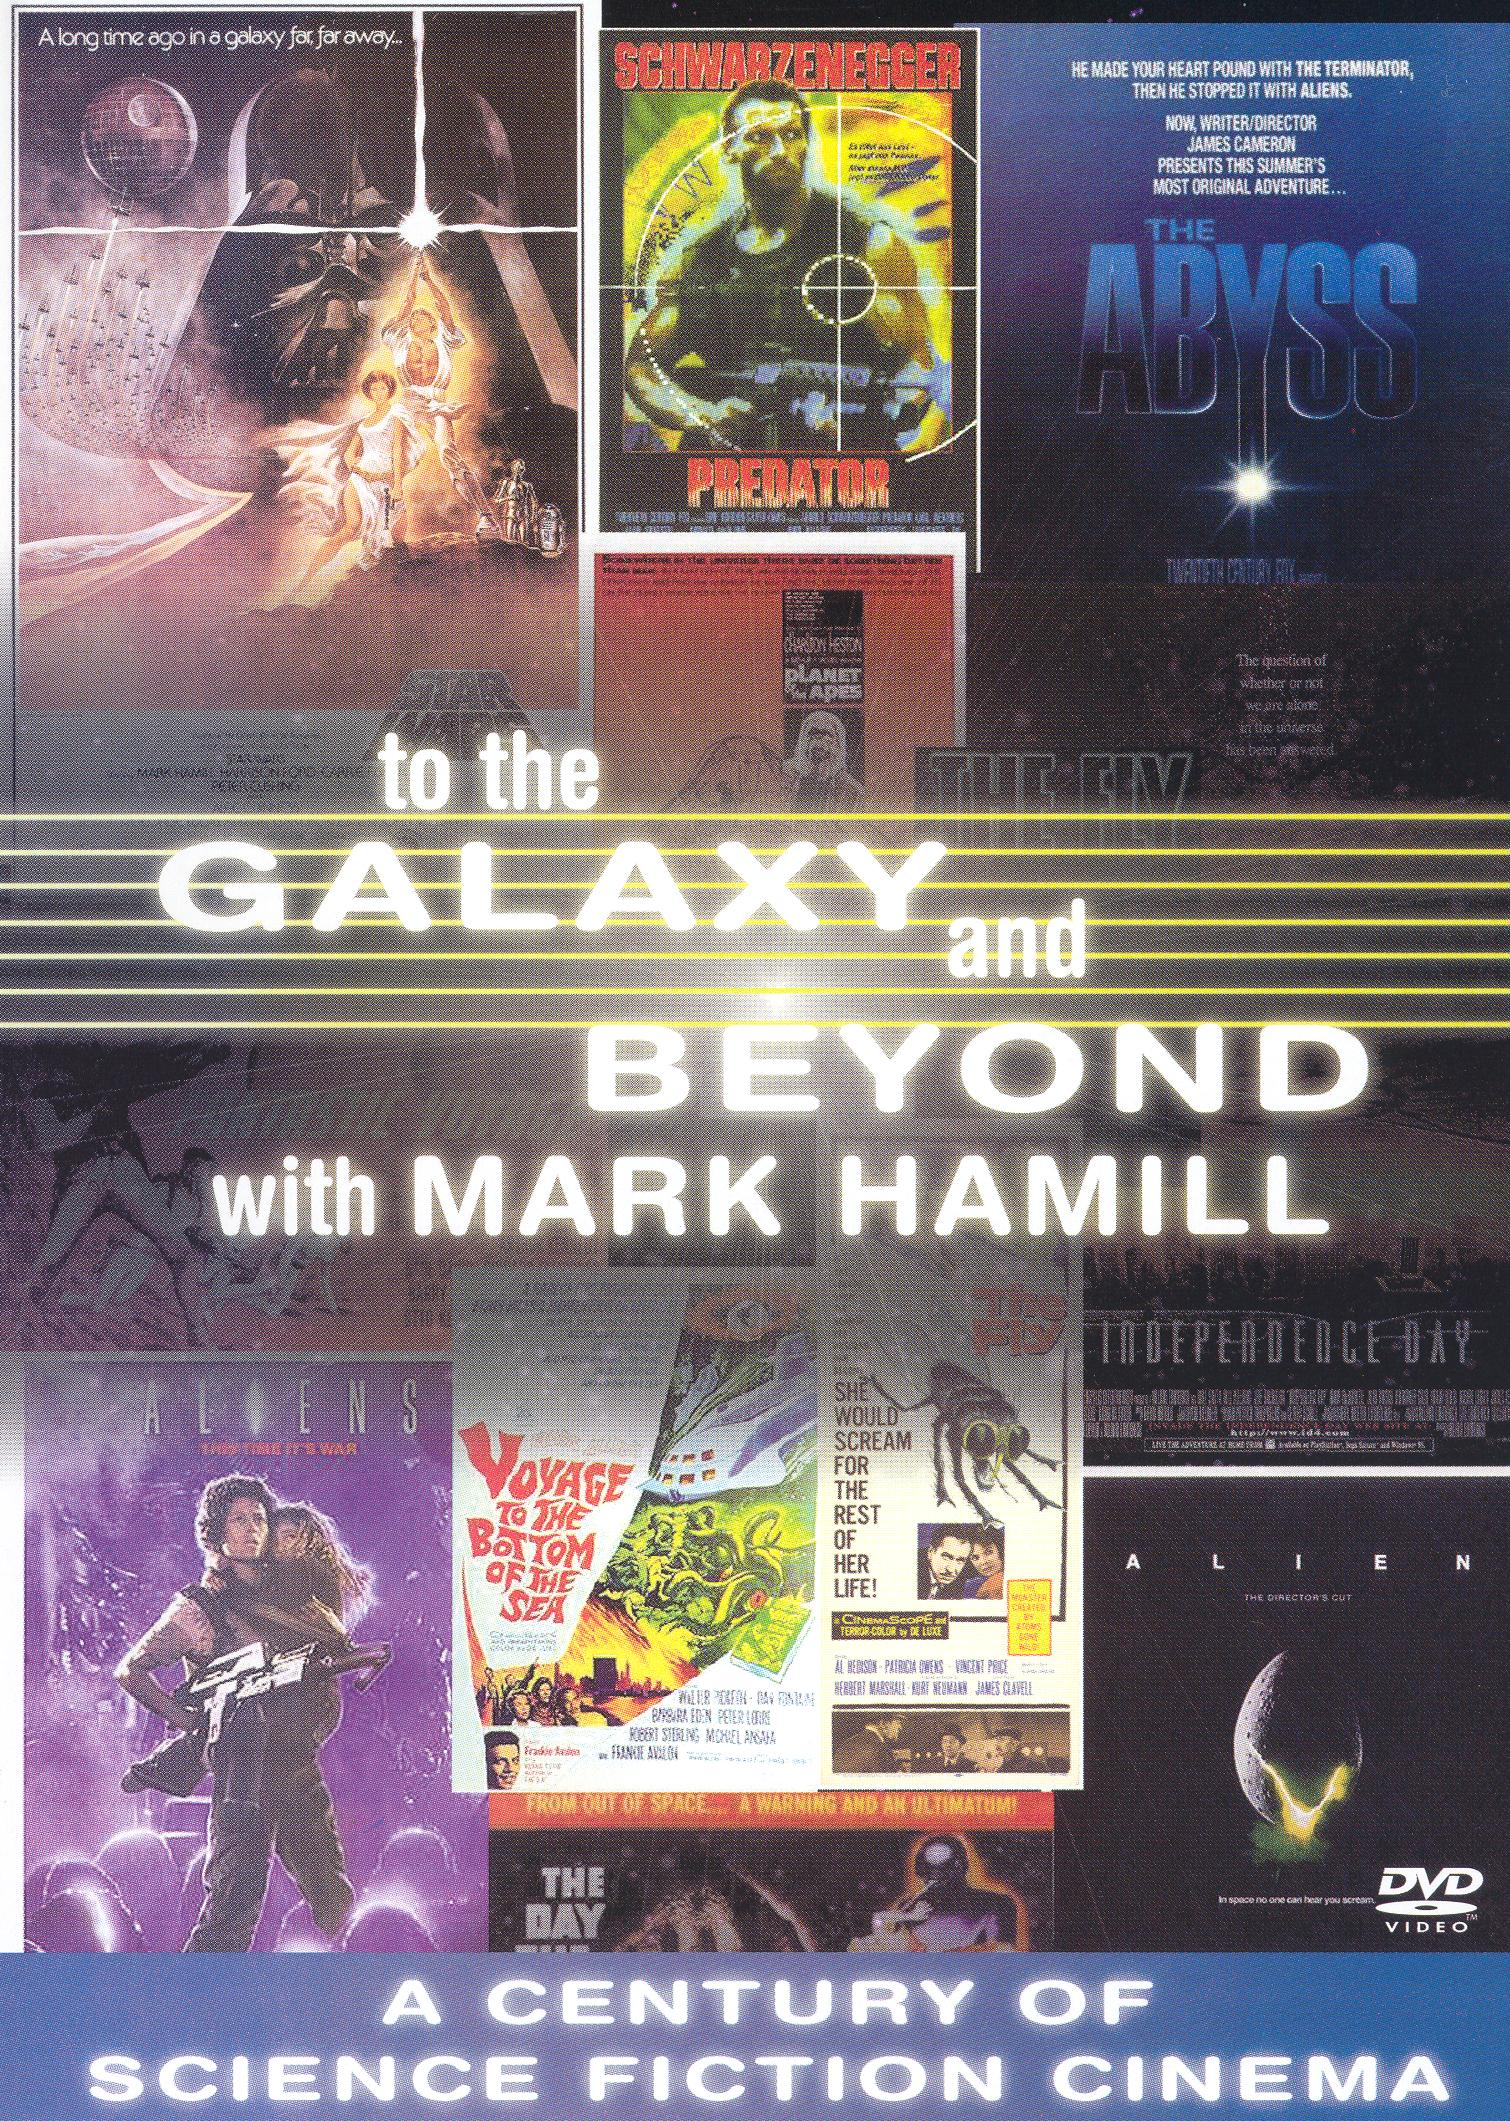 To the Galaxy and Beyond with Mark Hamill: A Century of Science Fiction